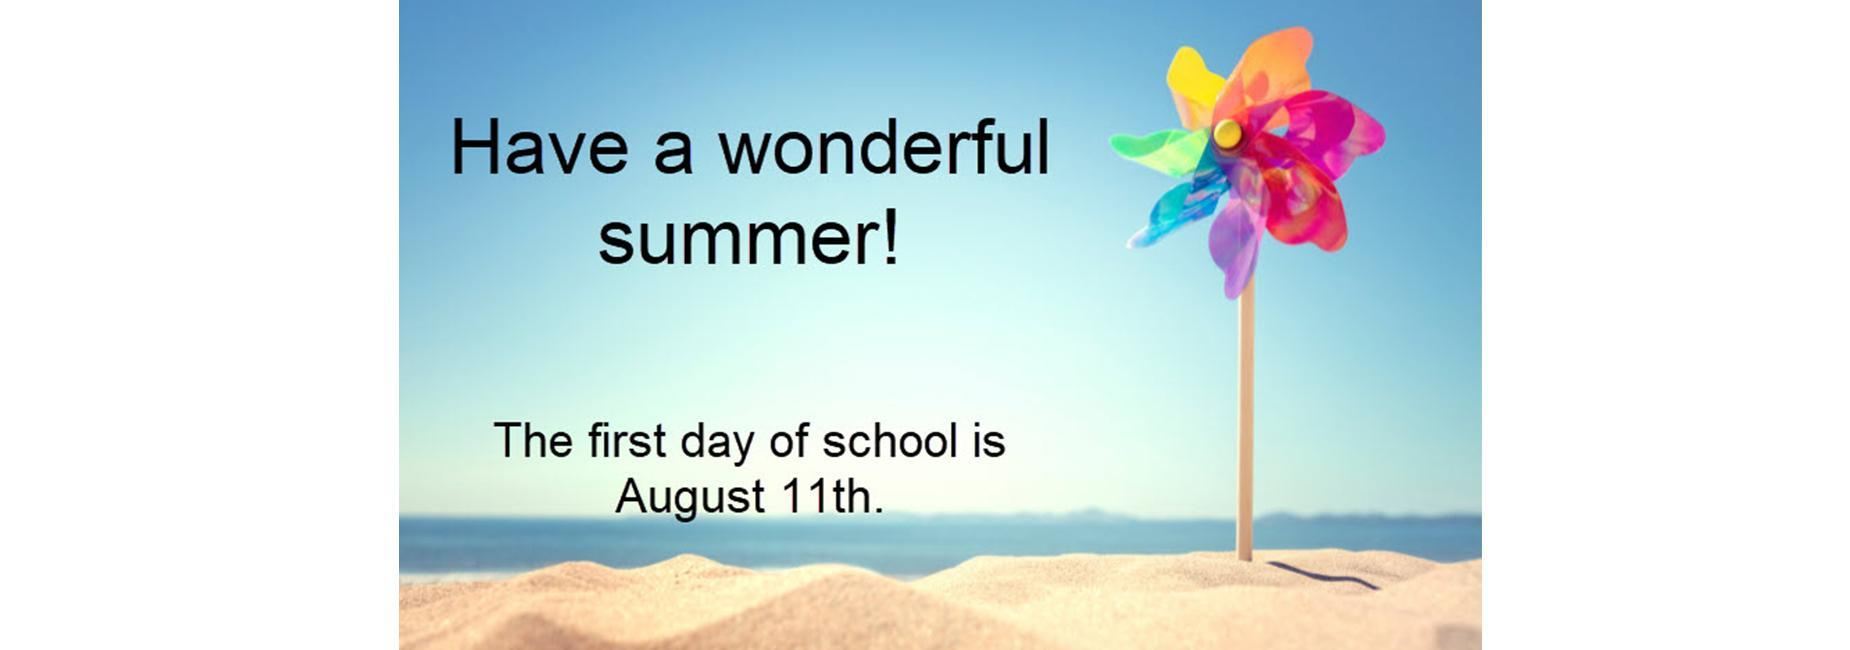 first day of school august 11